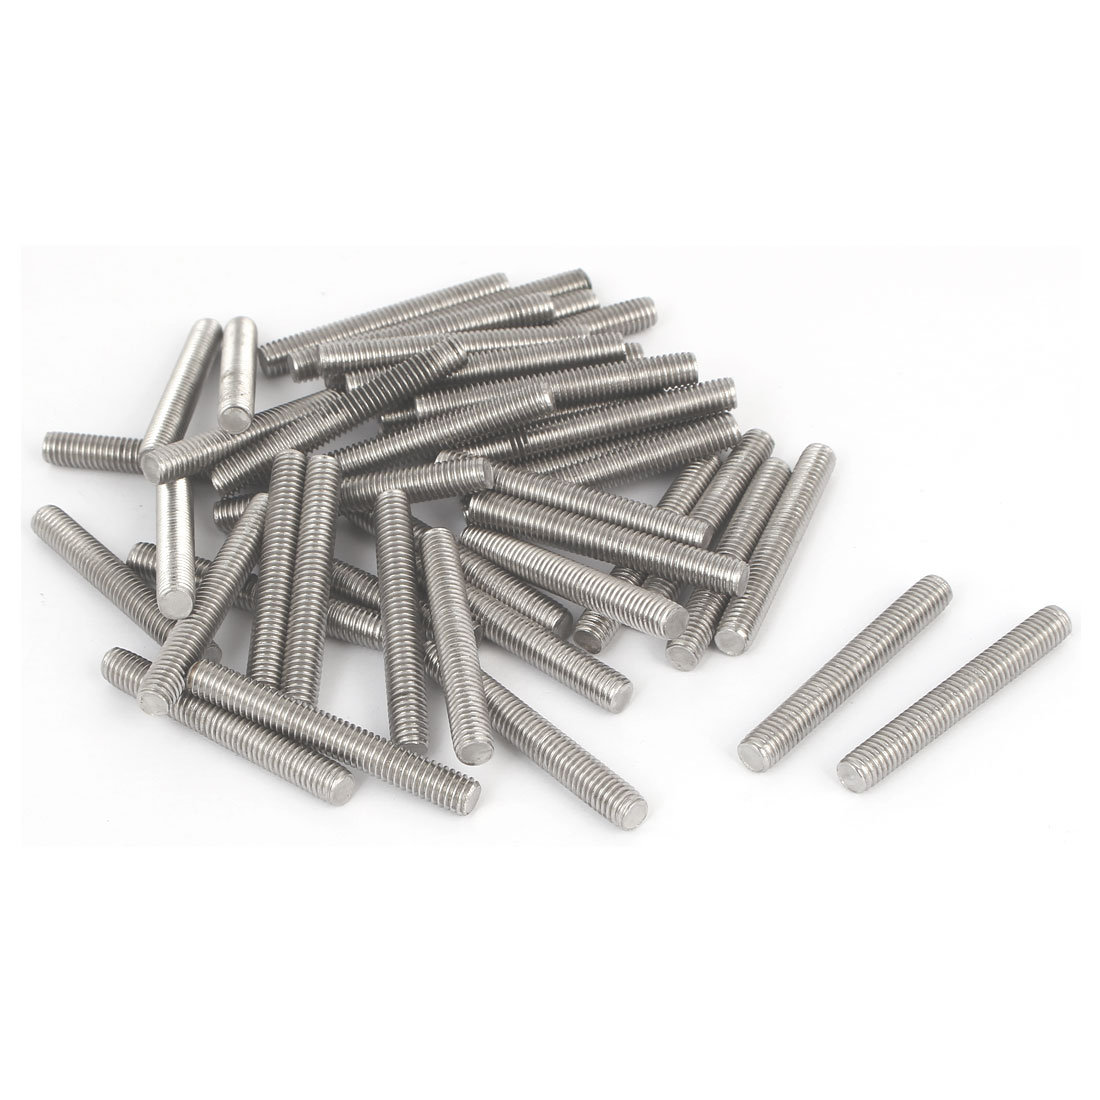 M6-x-45mm-Male-Threaded-304-Stainless-Steel-Rod-Bar-Studs-Hardware-20-Pcs